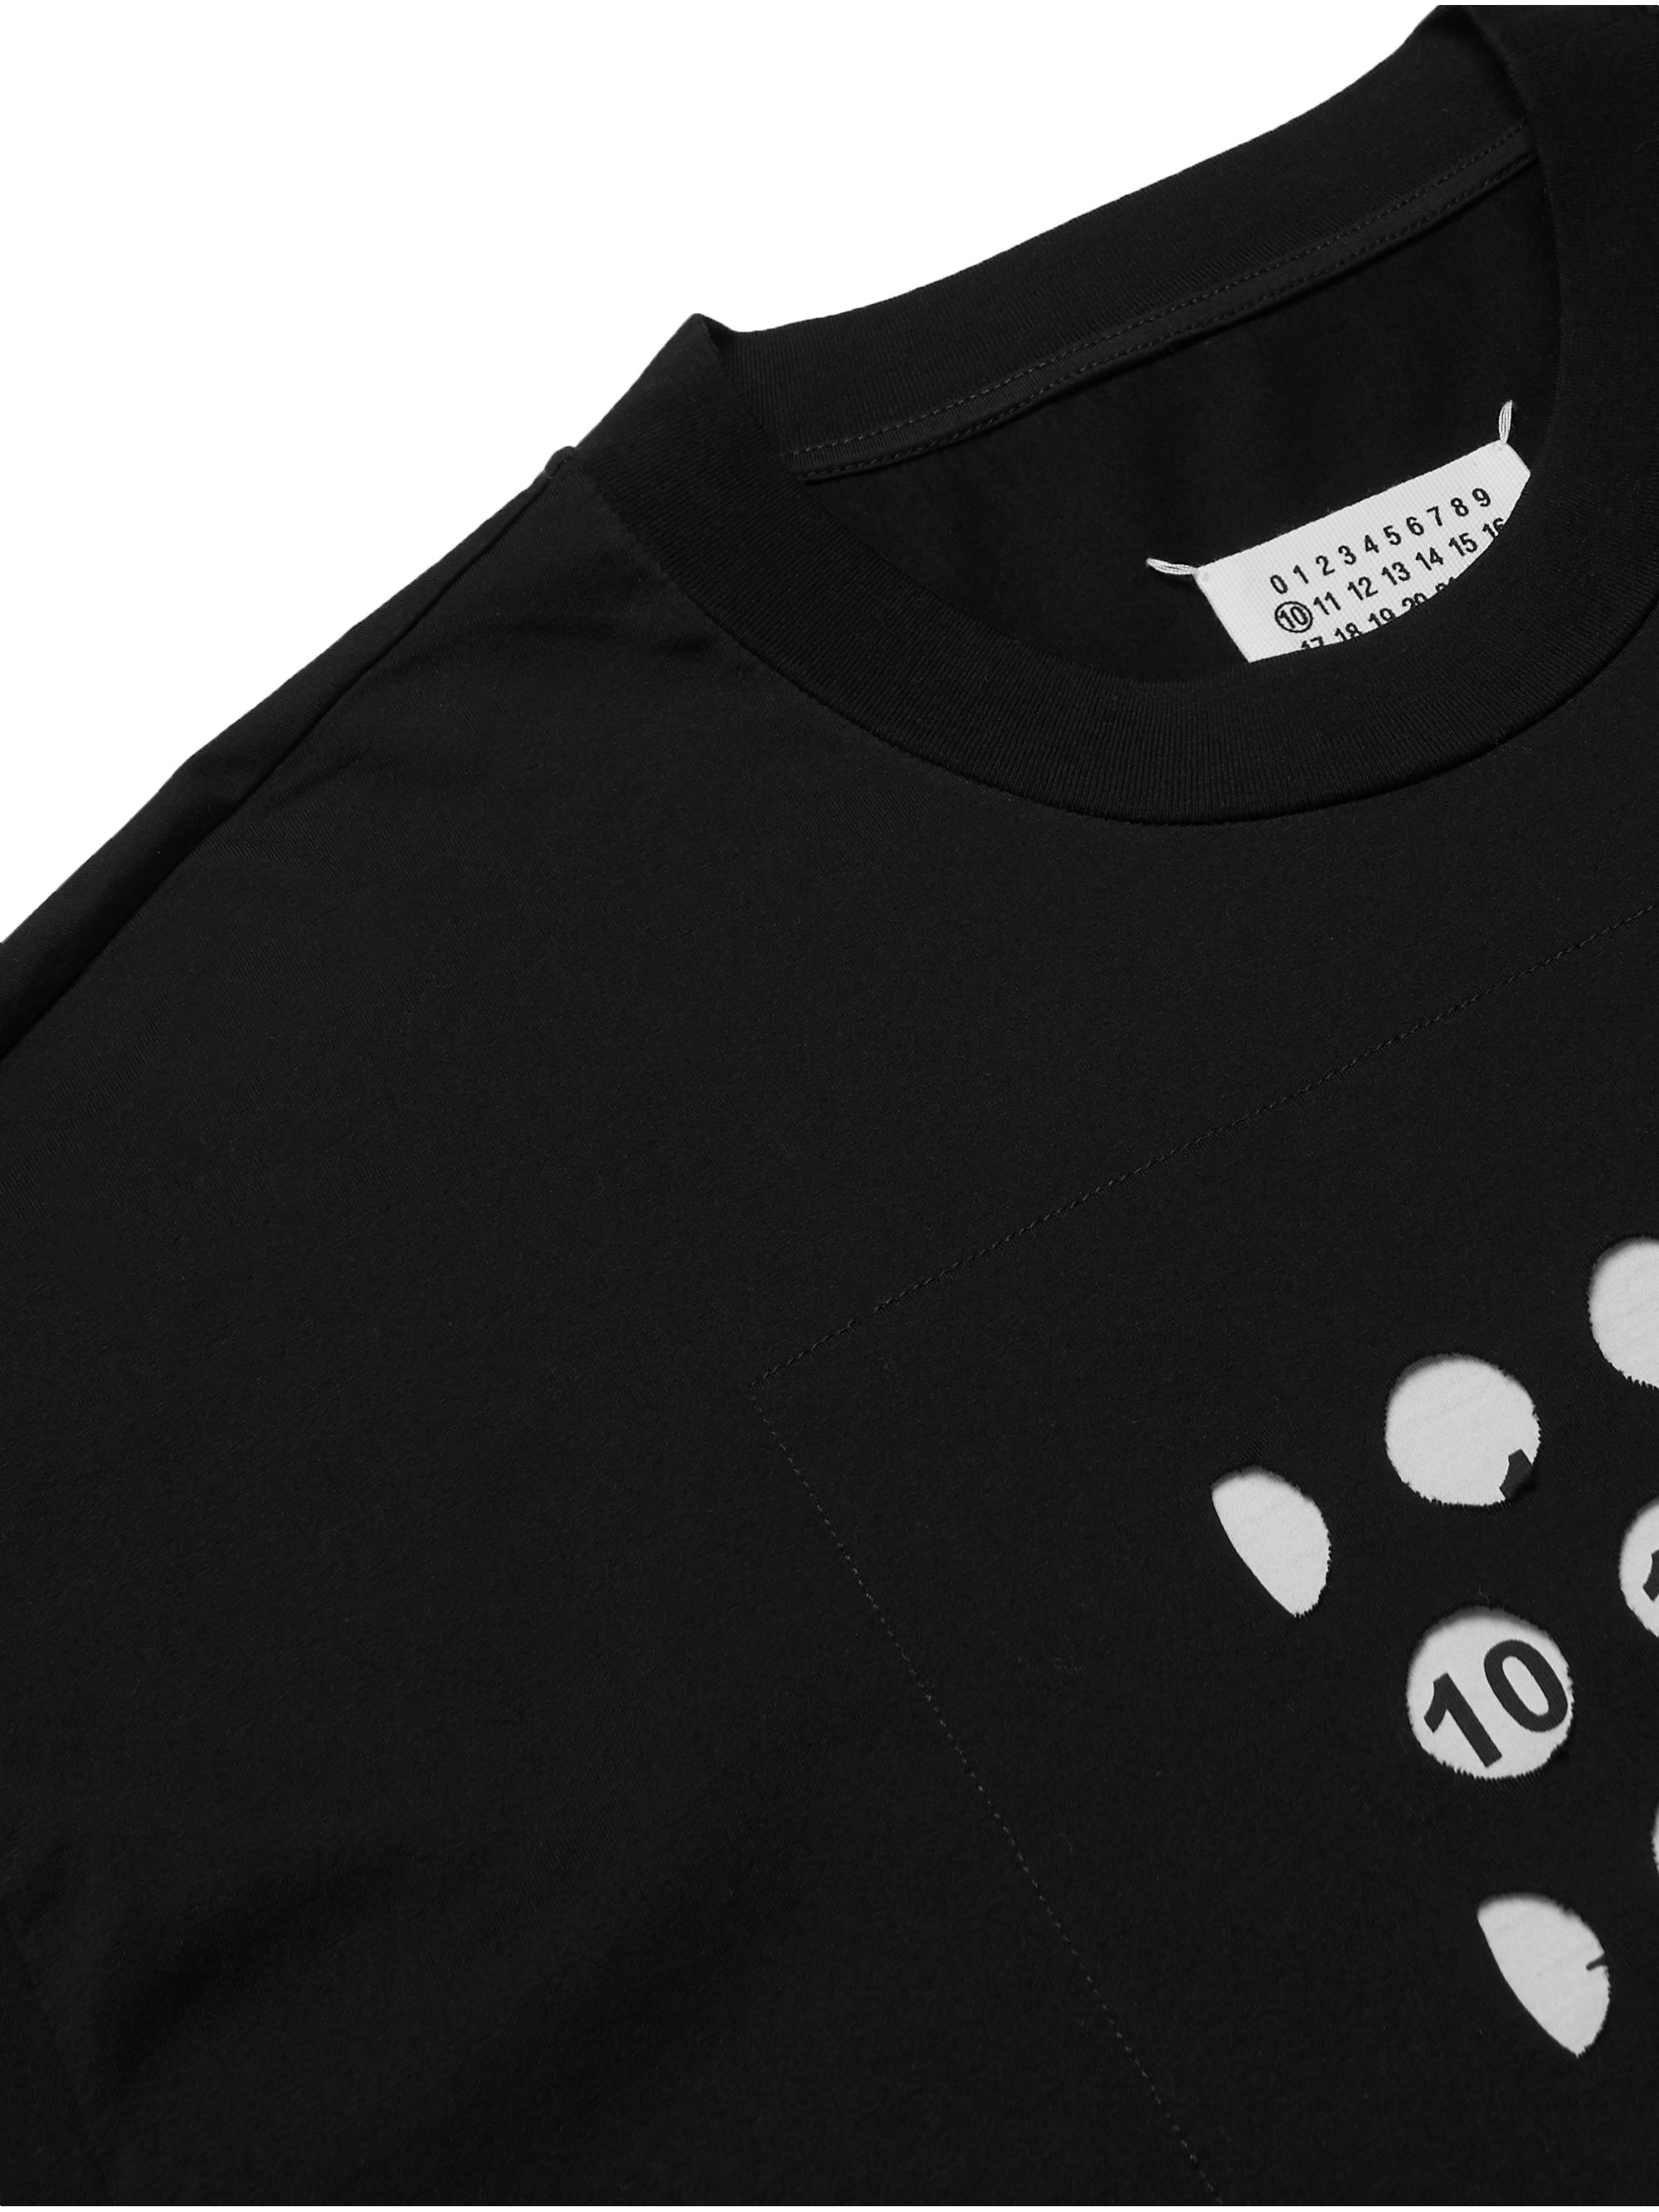 Maison Margiela Oversized Logo-Print Cut-Out Cotton-Jersey T-Shirt